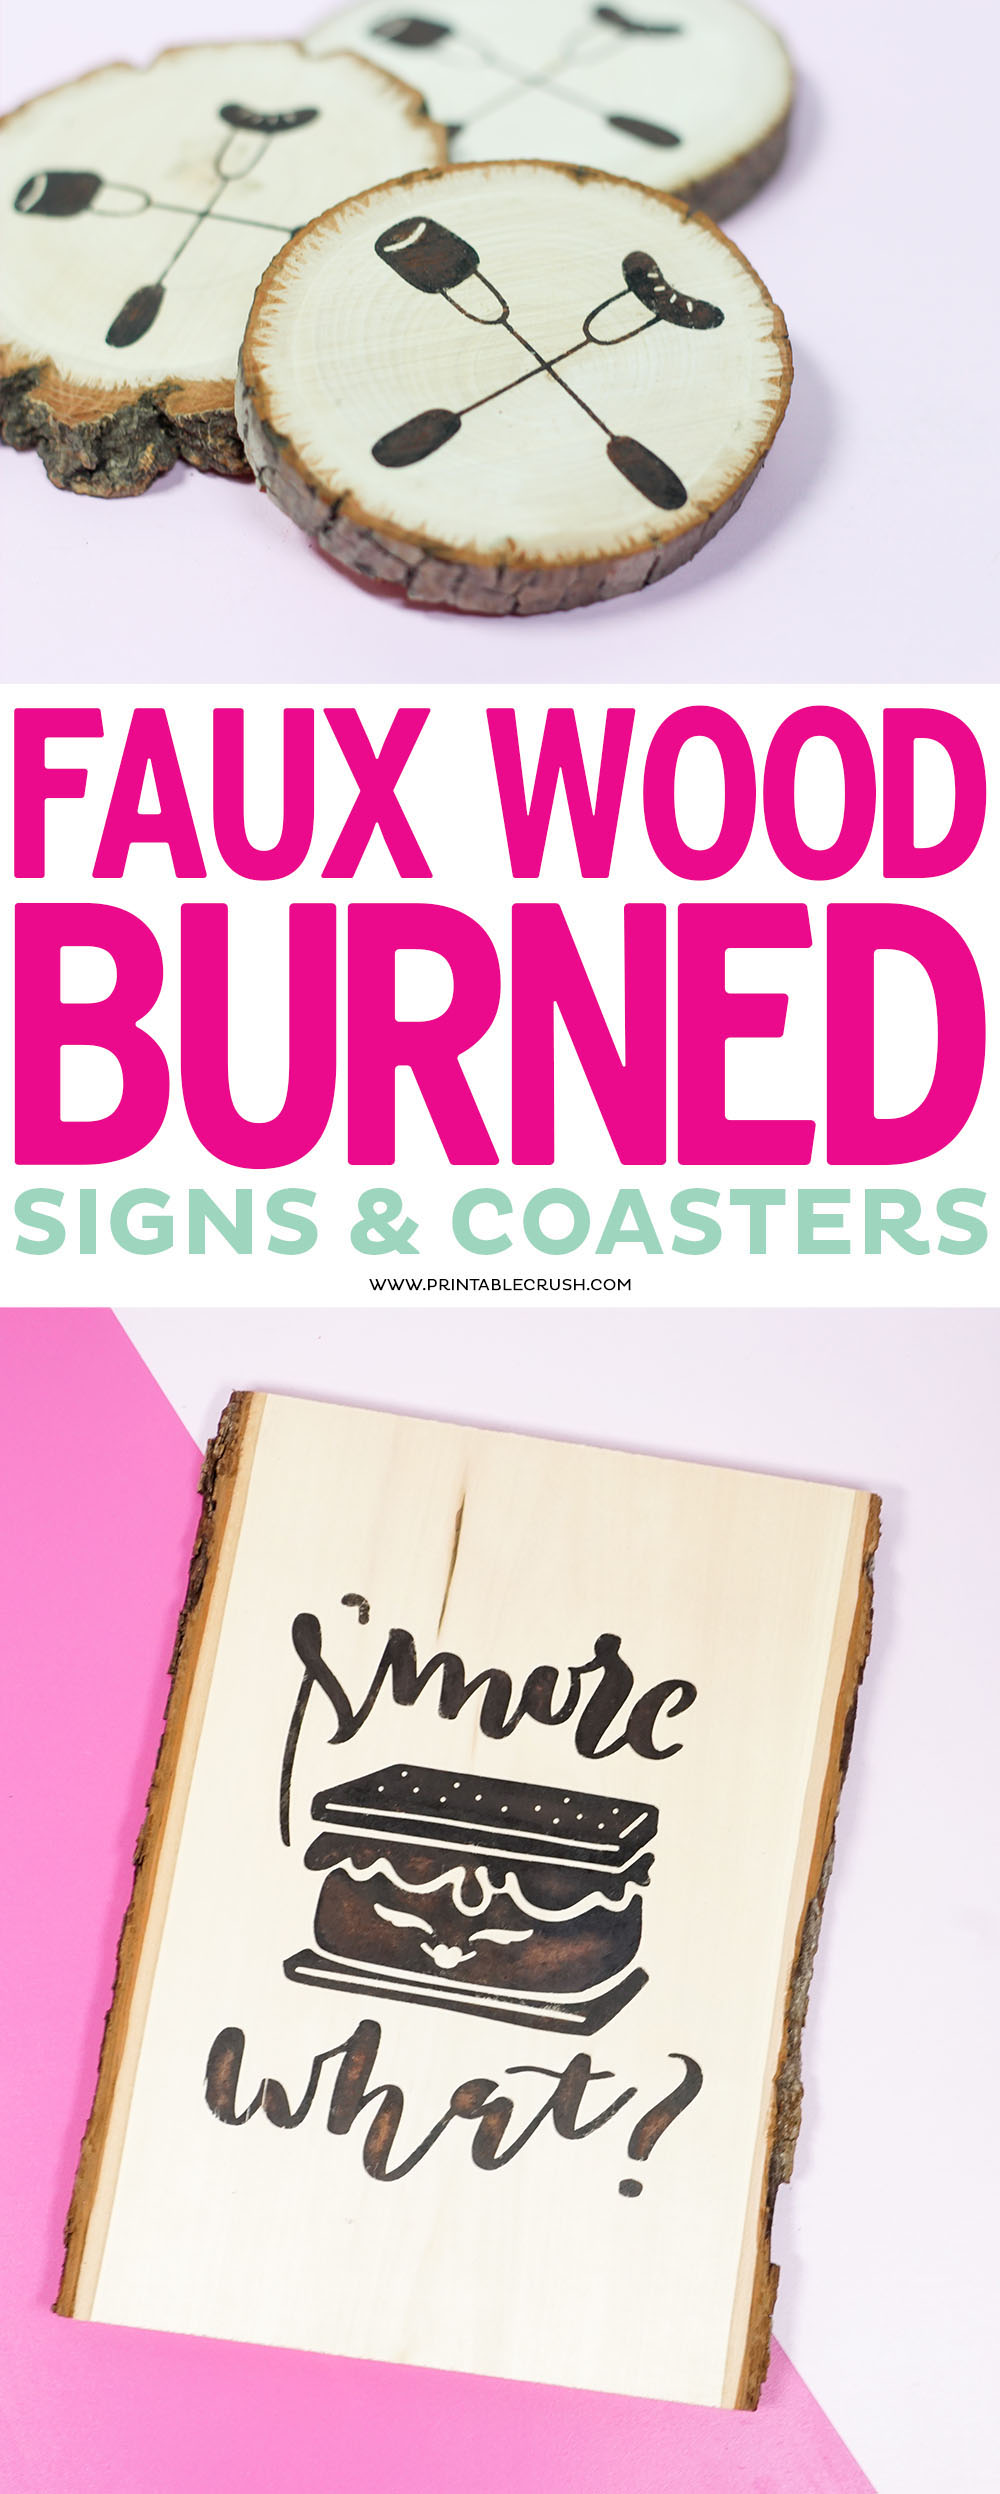 This Faux Wood Burned Sign and Coasters Tutorial is SO easy and no one will know it's painted! It works great with vinyl stencils and such easy cleanup!